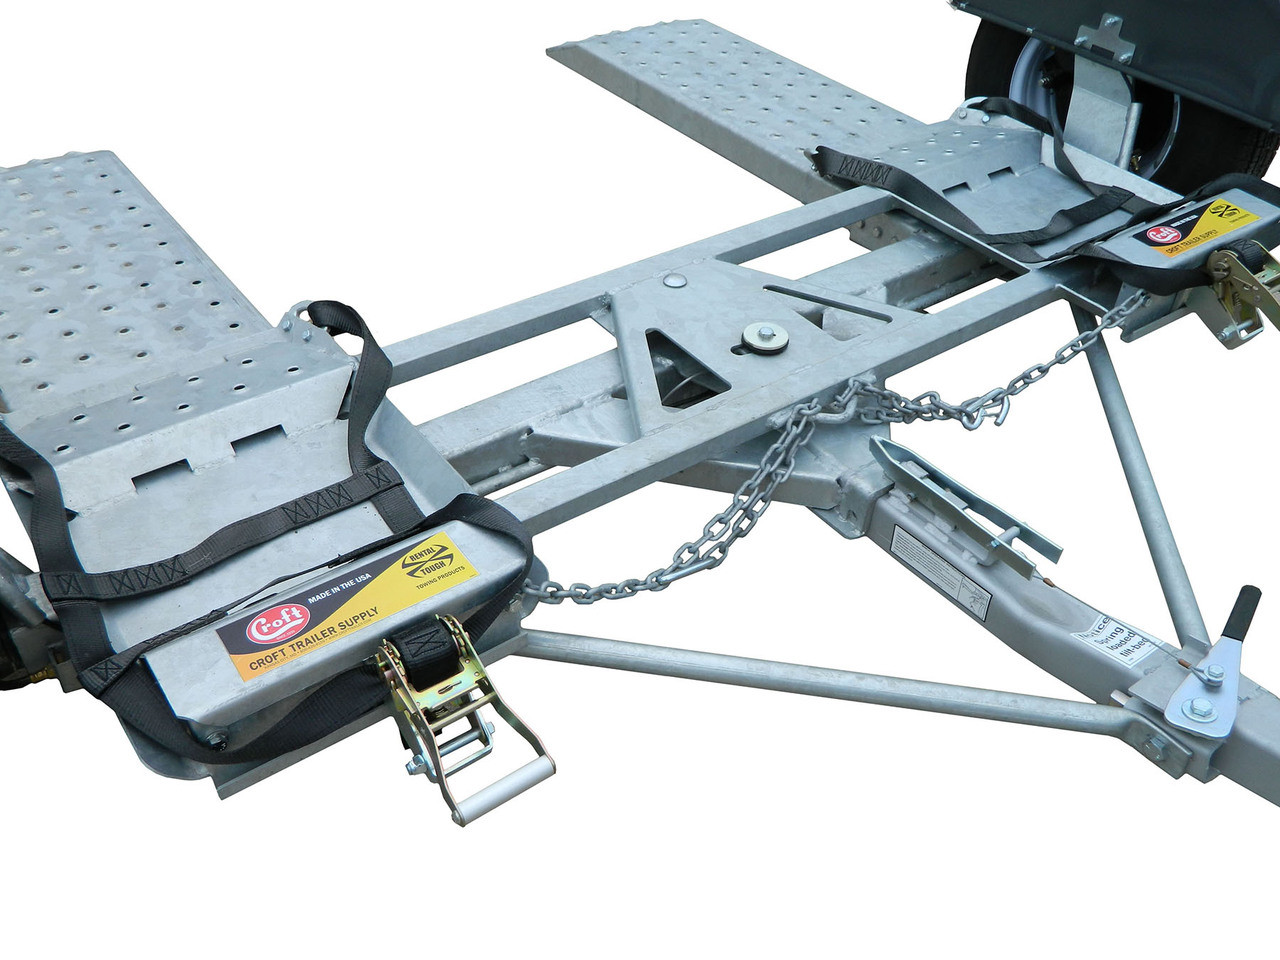 CGTD76 --- CROFT Torsion Axle Tow Dolly - GT400